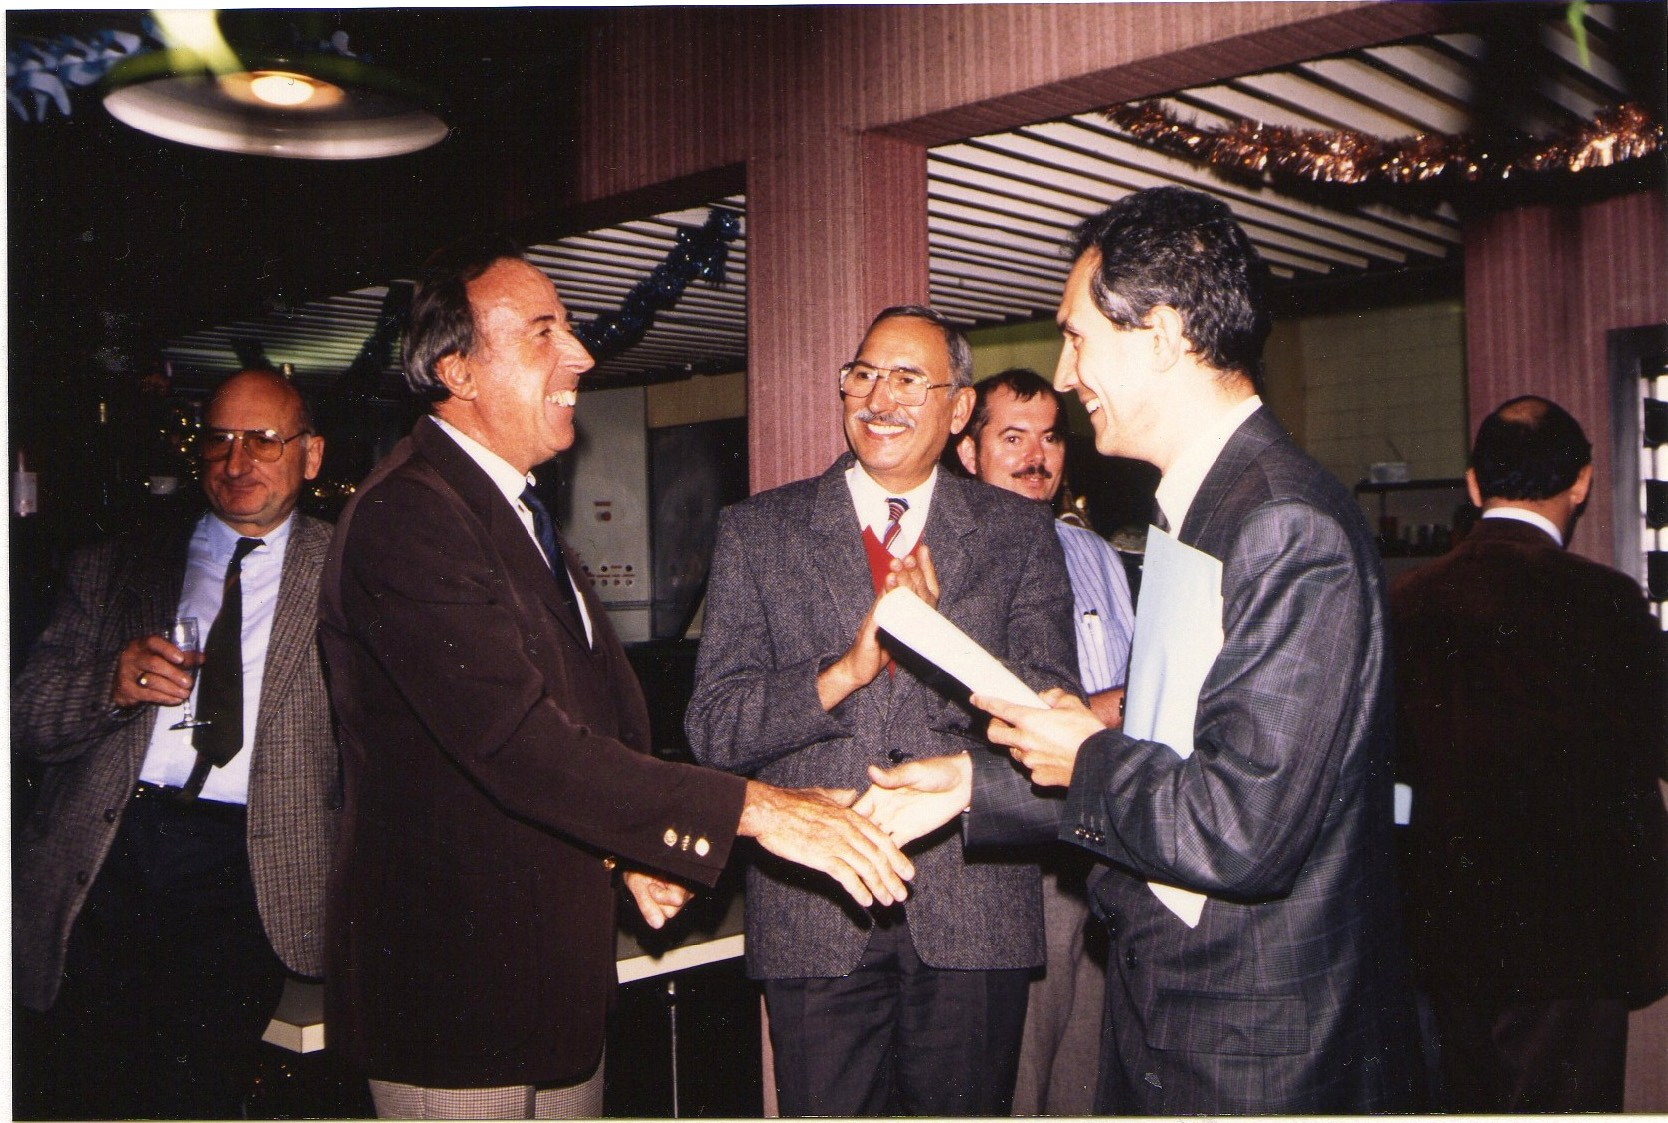 1989 medaille travail jean philippe delorme